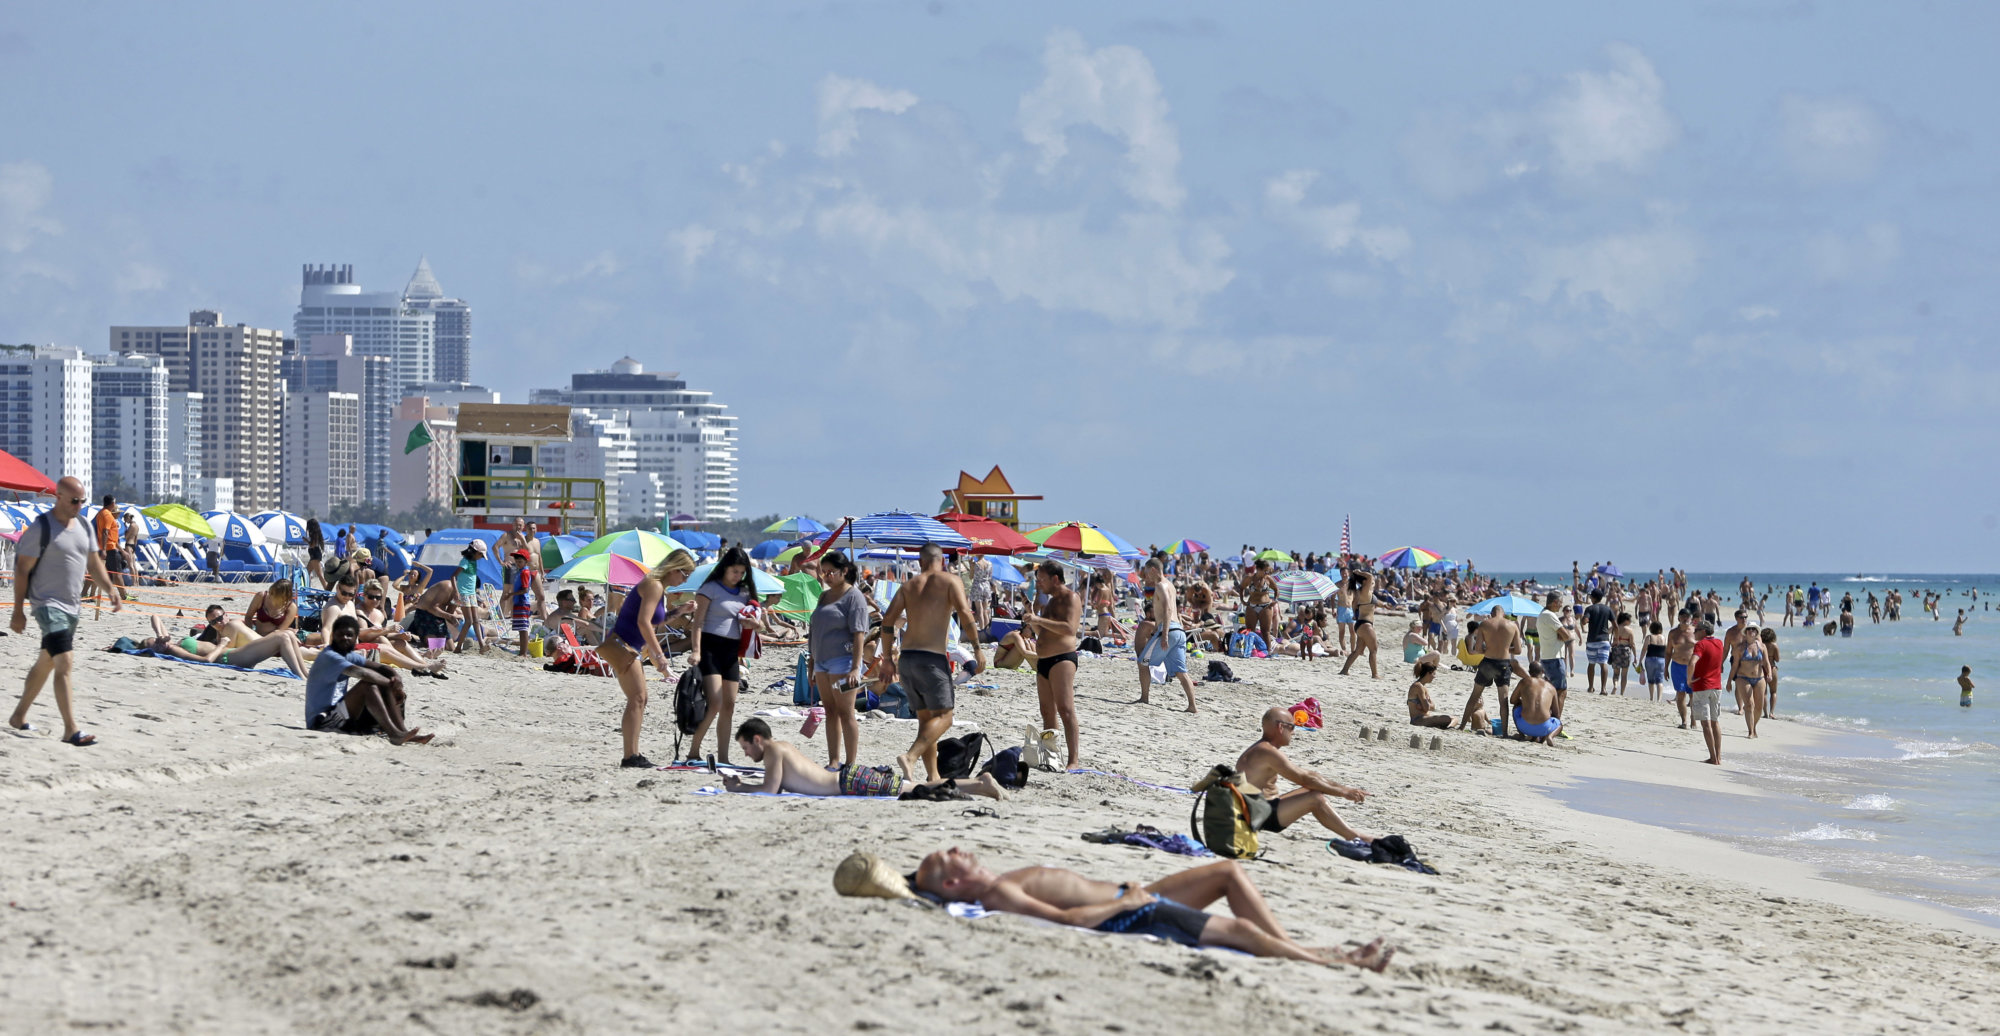 FILE - In this Aug. 2, 2017, file photo, local residents and tourists enjoy a day at the beach in the South Beach area of Miami Beach, Fla. South Beach can be a great place for parents and teens to vacation together, especially if they can go their separate ways at times for beach, pool, shopping and dining. (AP Photo/Alan Diaz, File)